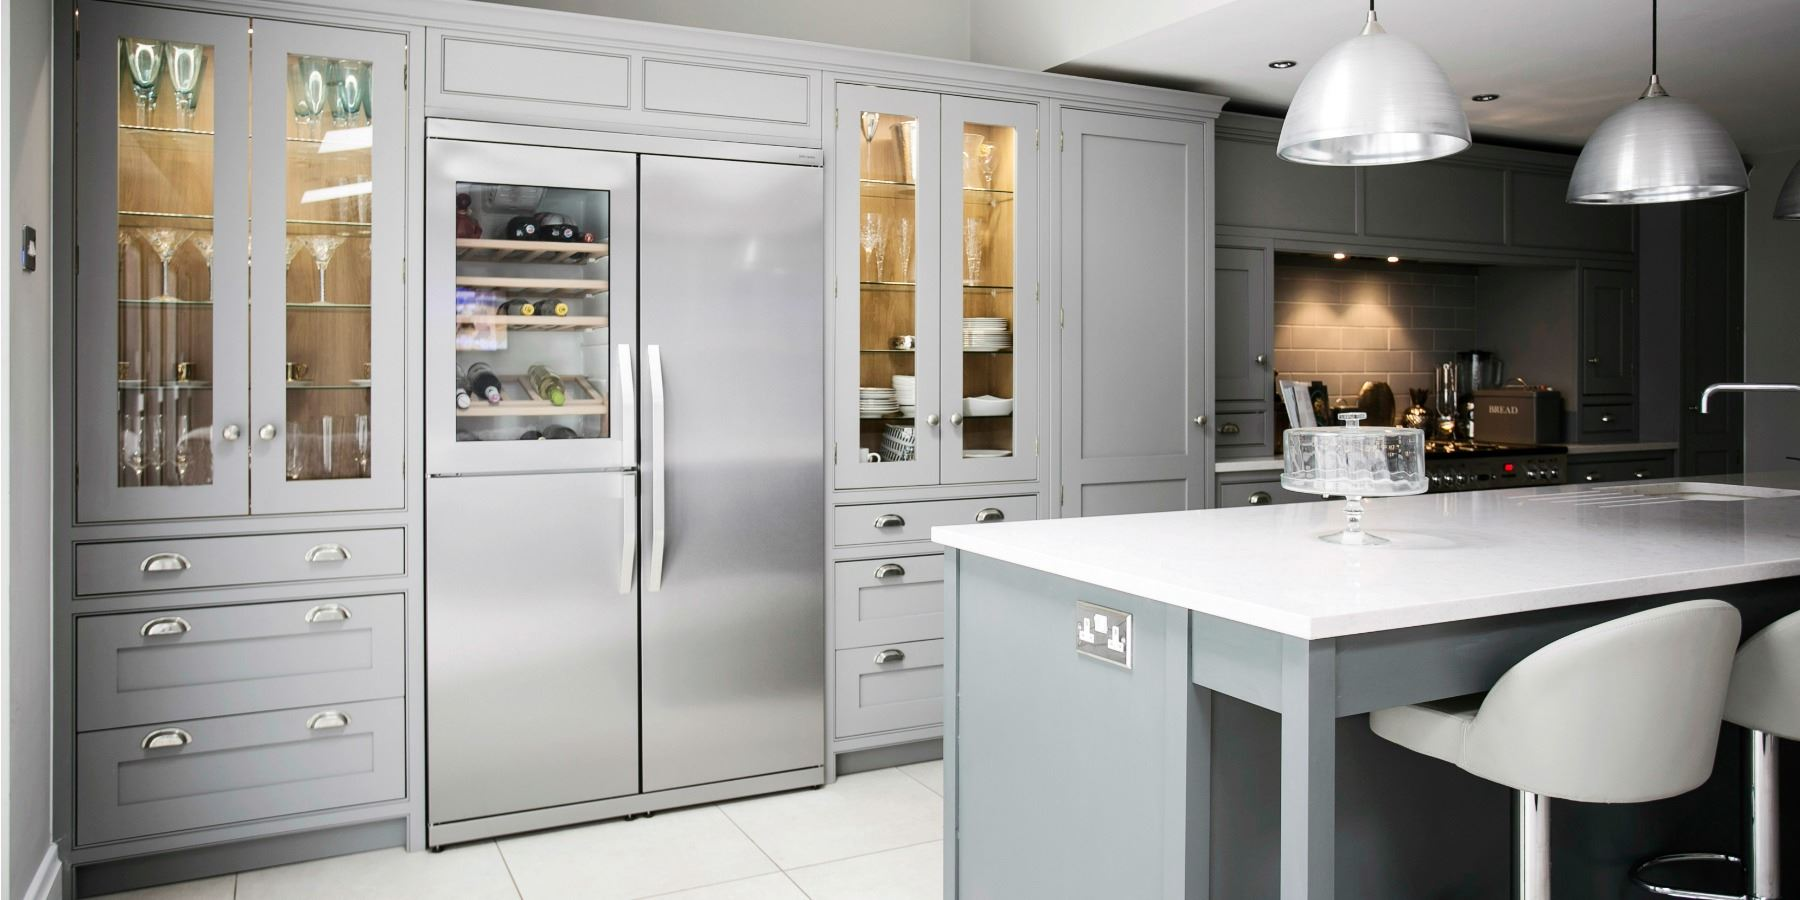 Burlanes Interiors - A sophisticated, sociable kitchen